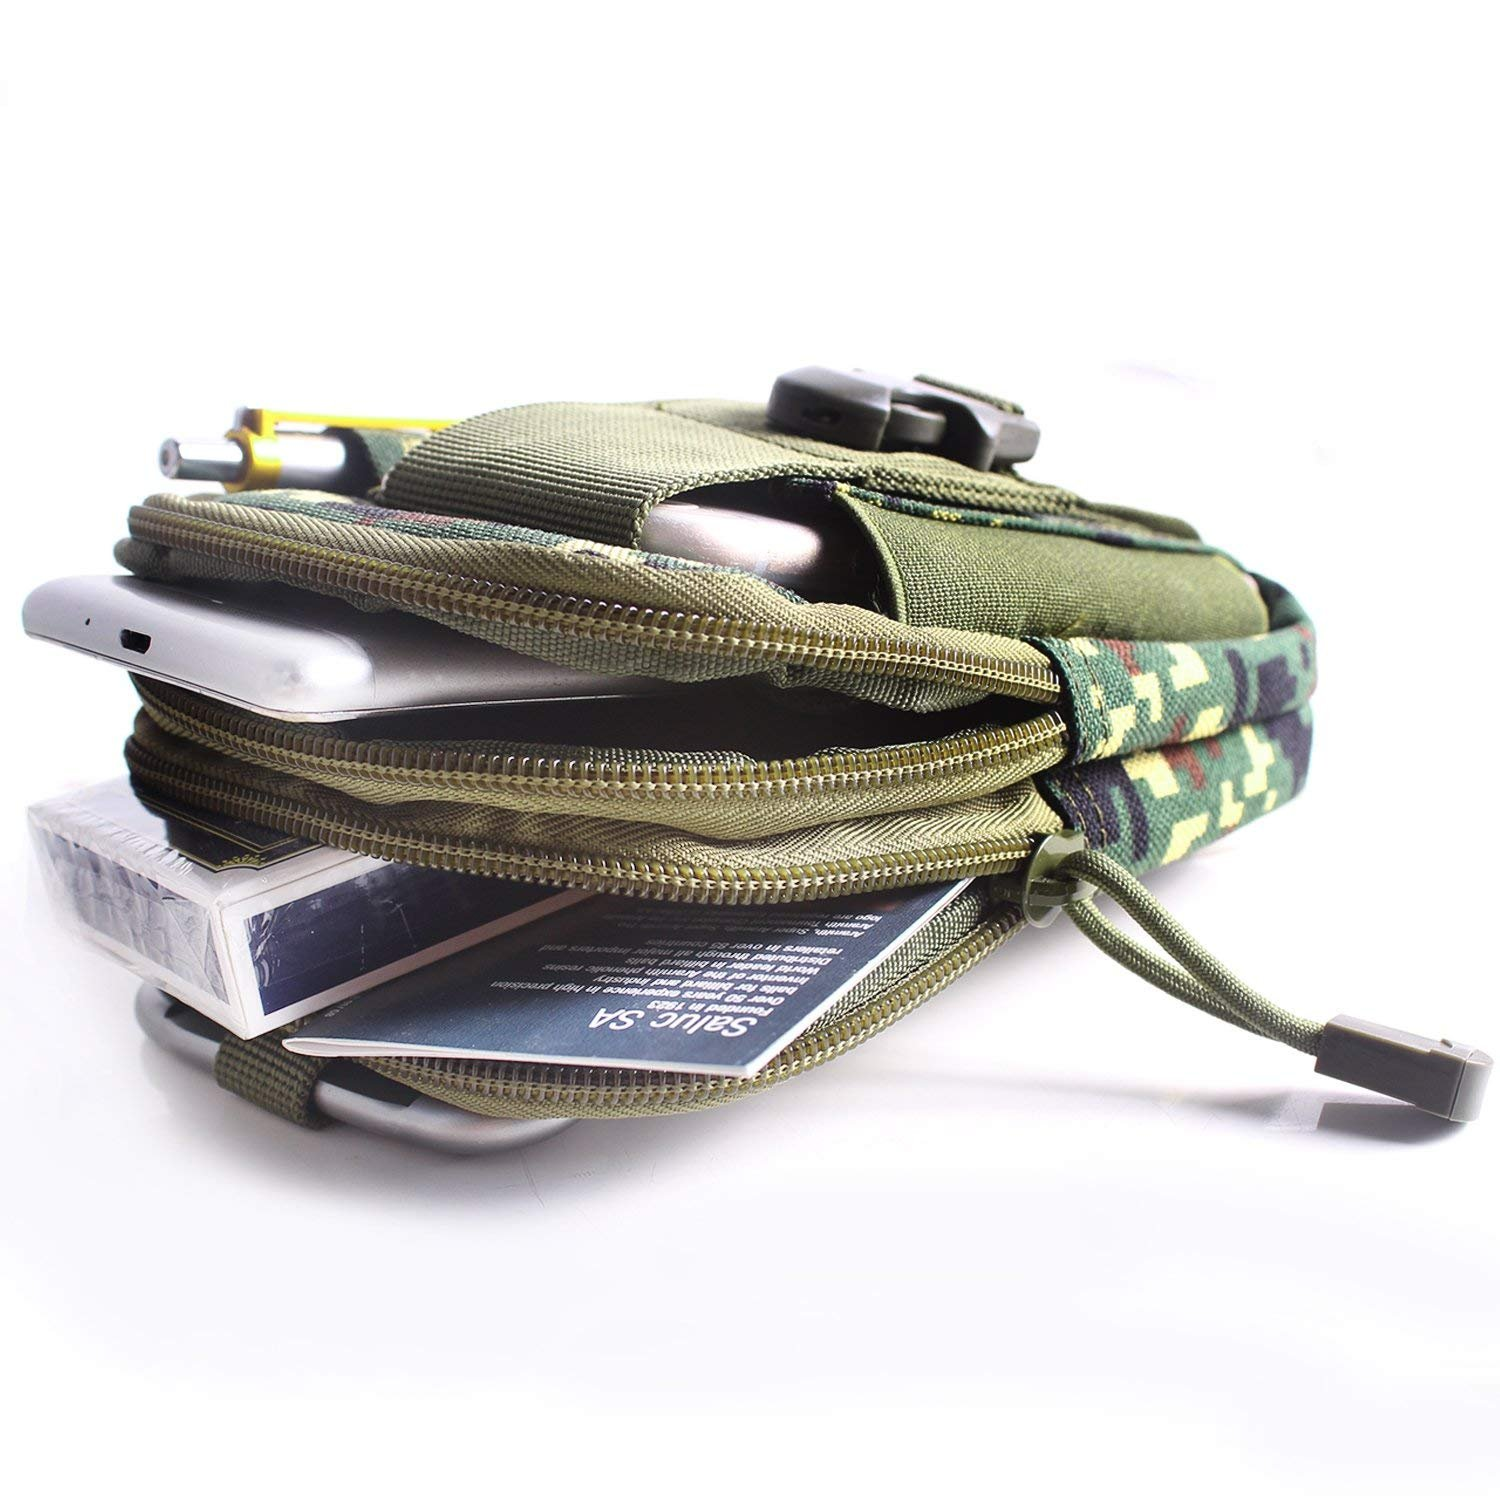 Unigear Molle Pouch Compact EDC Utility Tactical Multi-Purpose Gadget Tool Waist Bag Pack with Extra Aluminum Carabiner